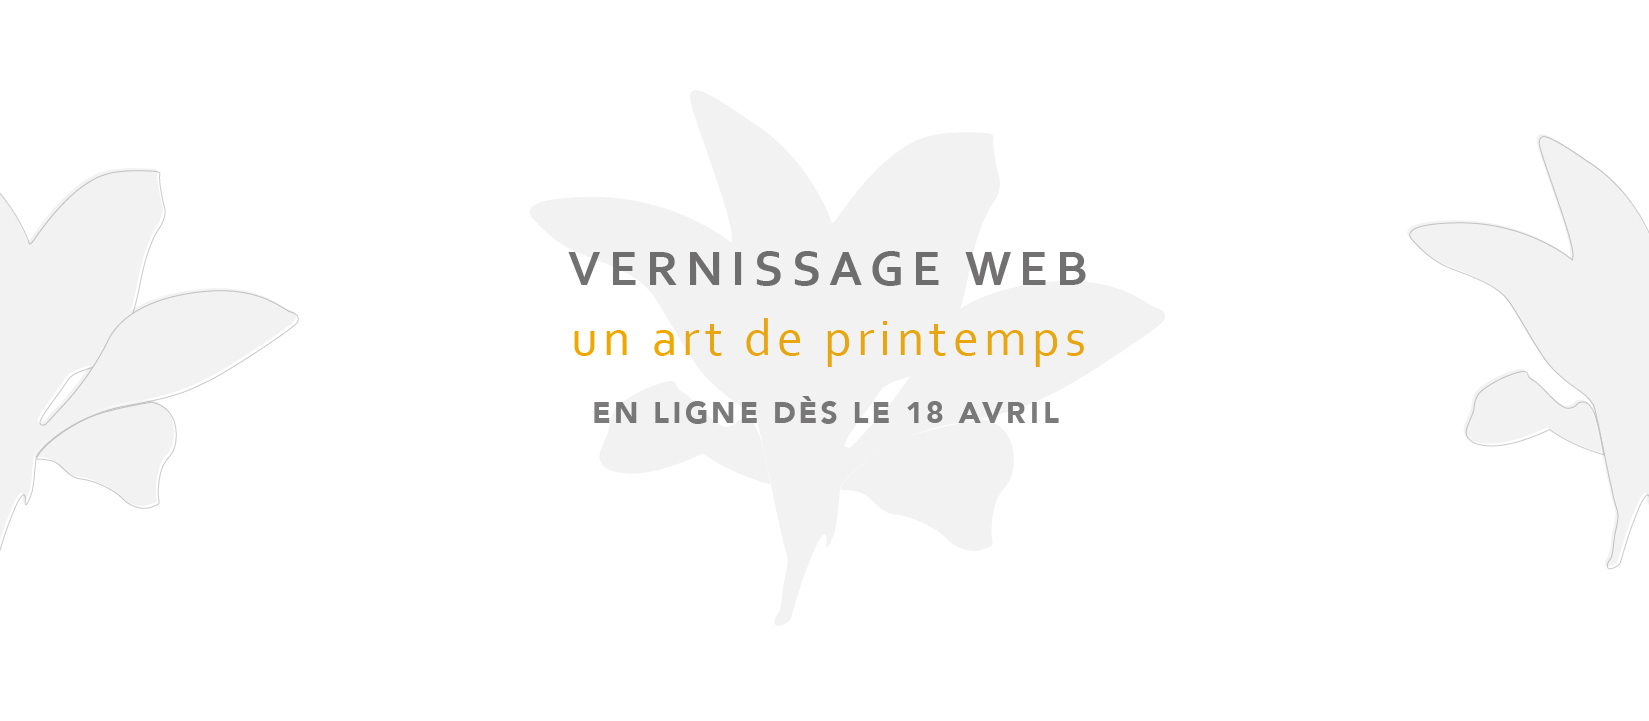 Vernissage web Un art de printemps